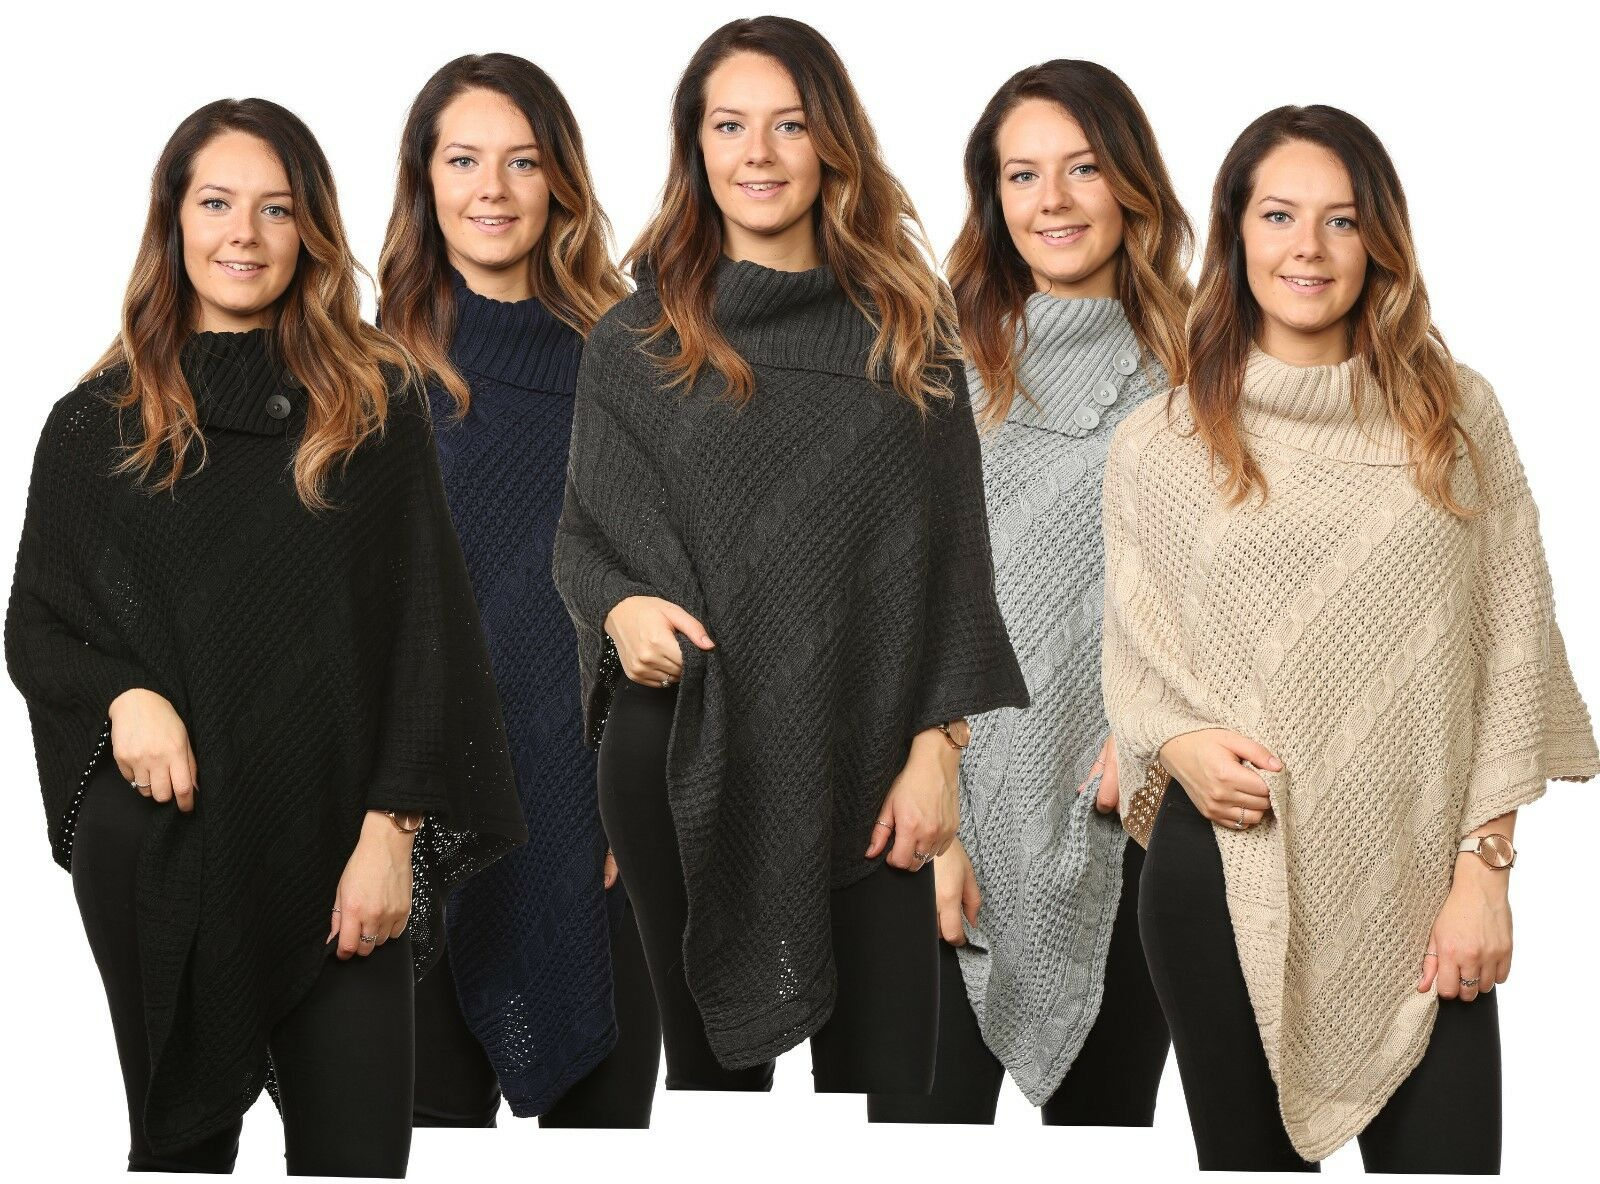 09efb6b63e0 Details about New Ladies Women s Cable Knitted Poncho Sweater Jumper Top UK  Plus Size Fits All